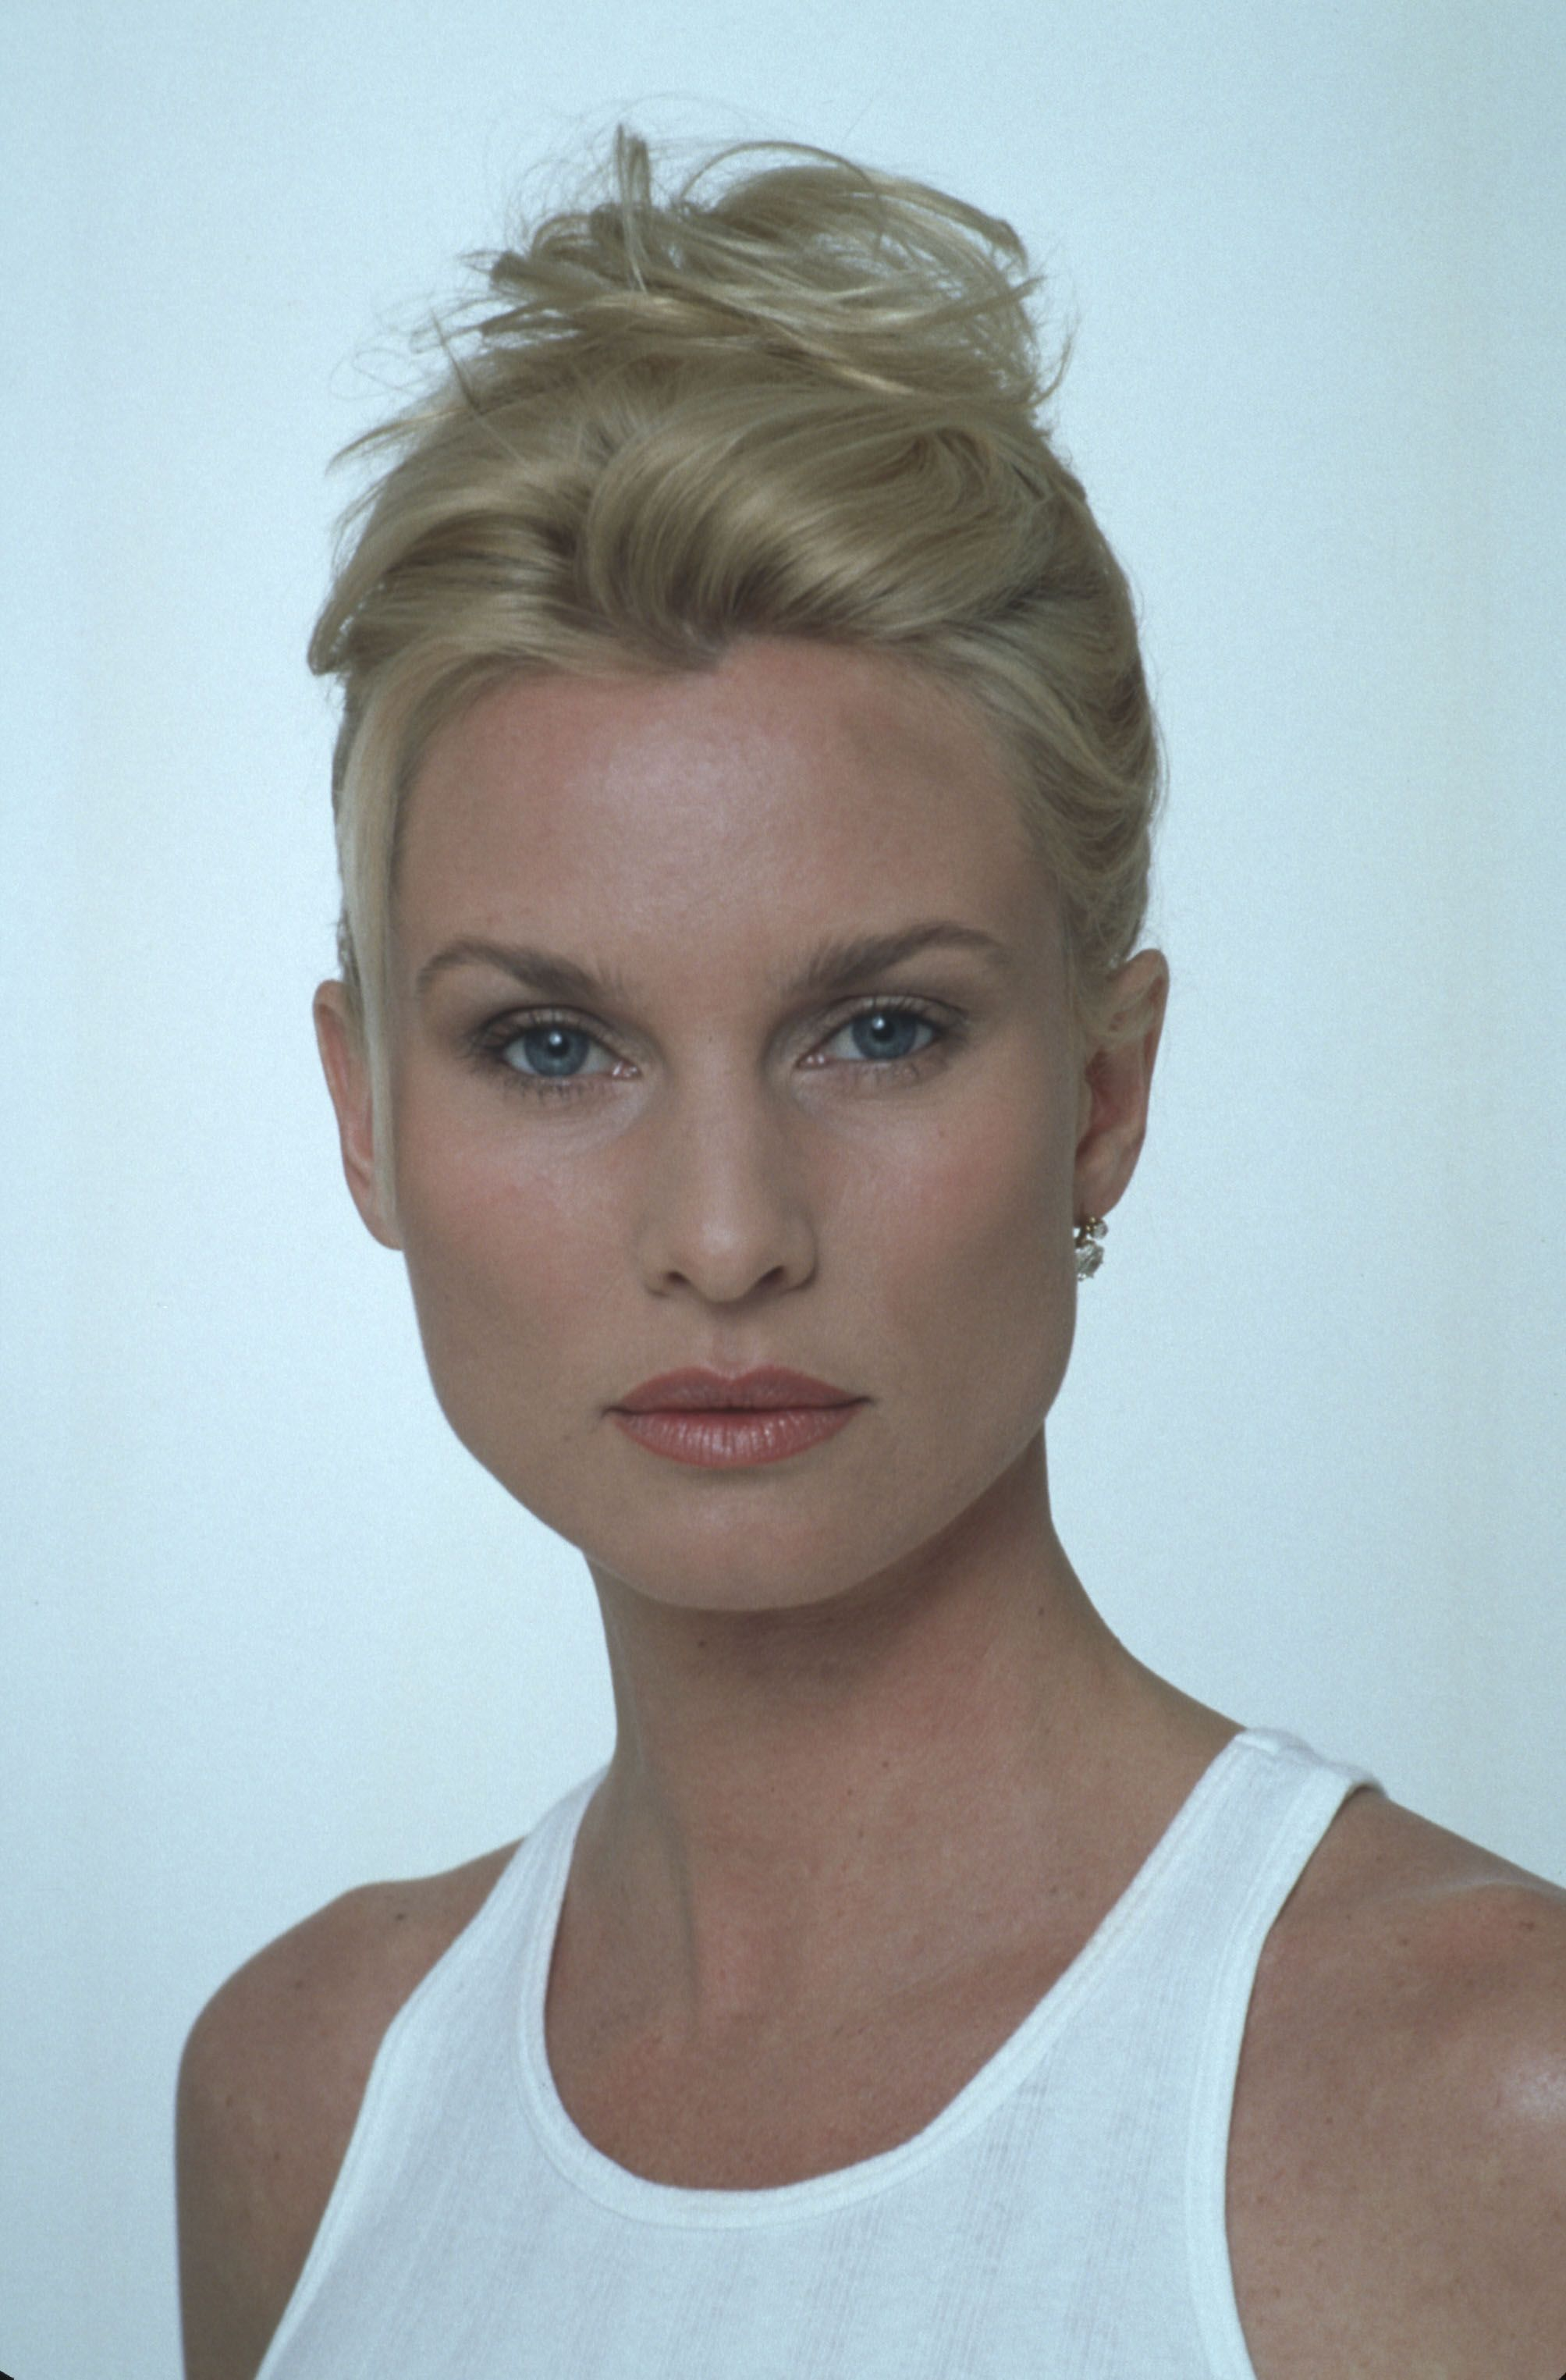 nicollette sheridan desperate housewives lawsuit